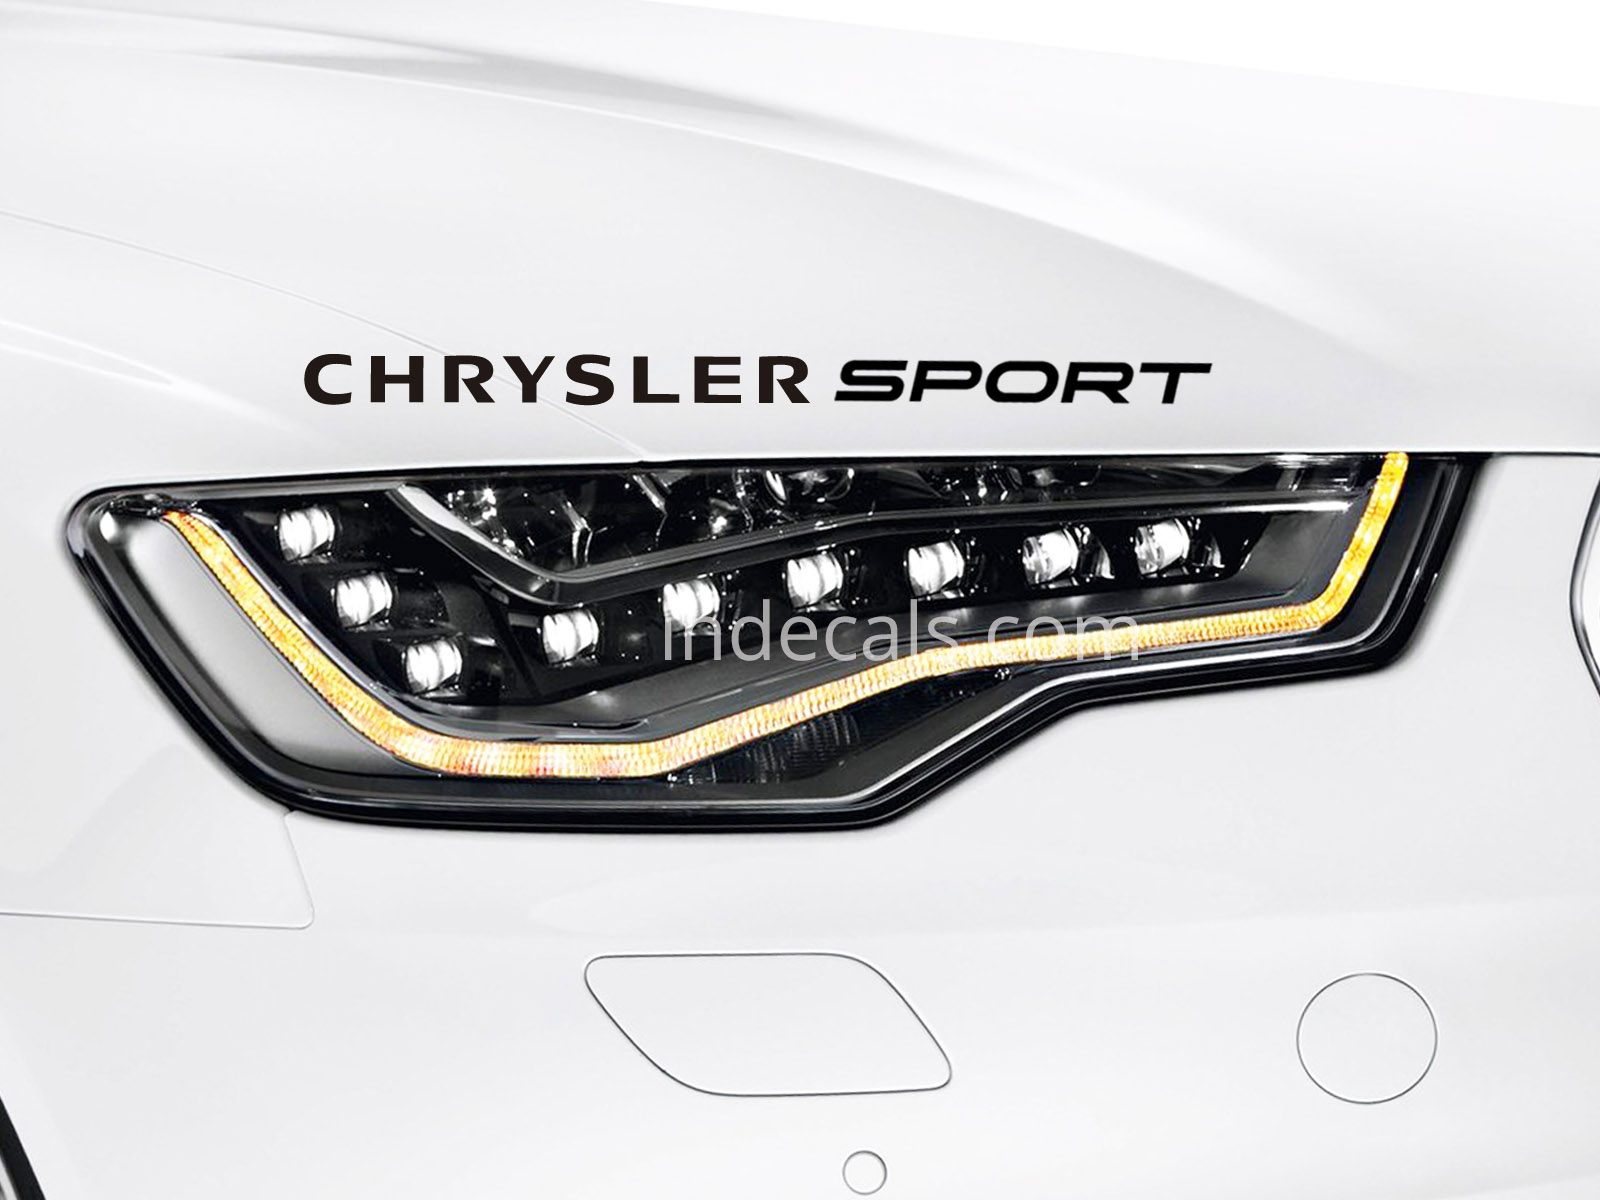 1 x Chrysler Sport Sticker - Black